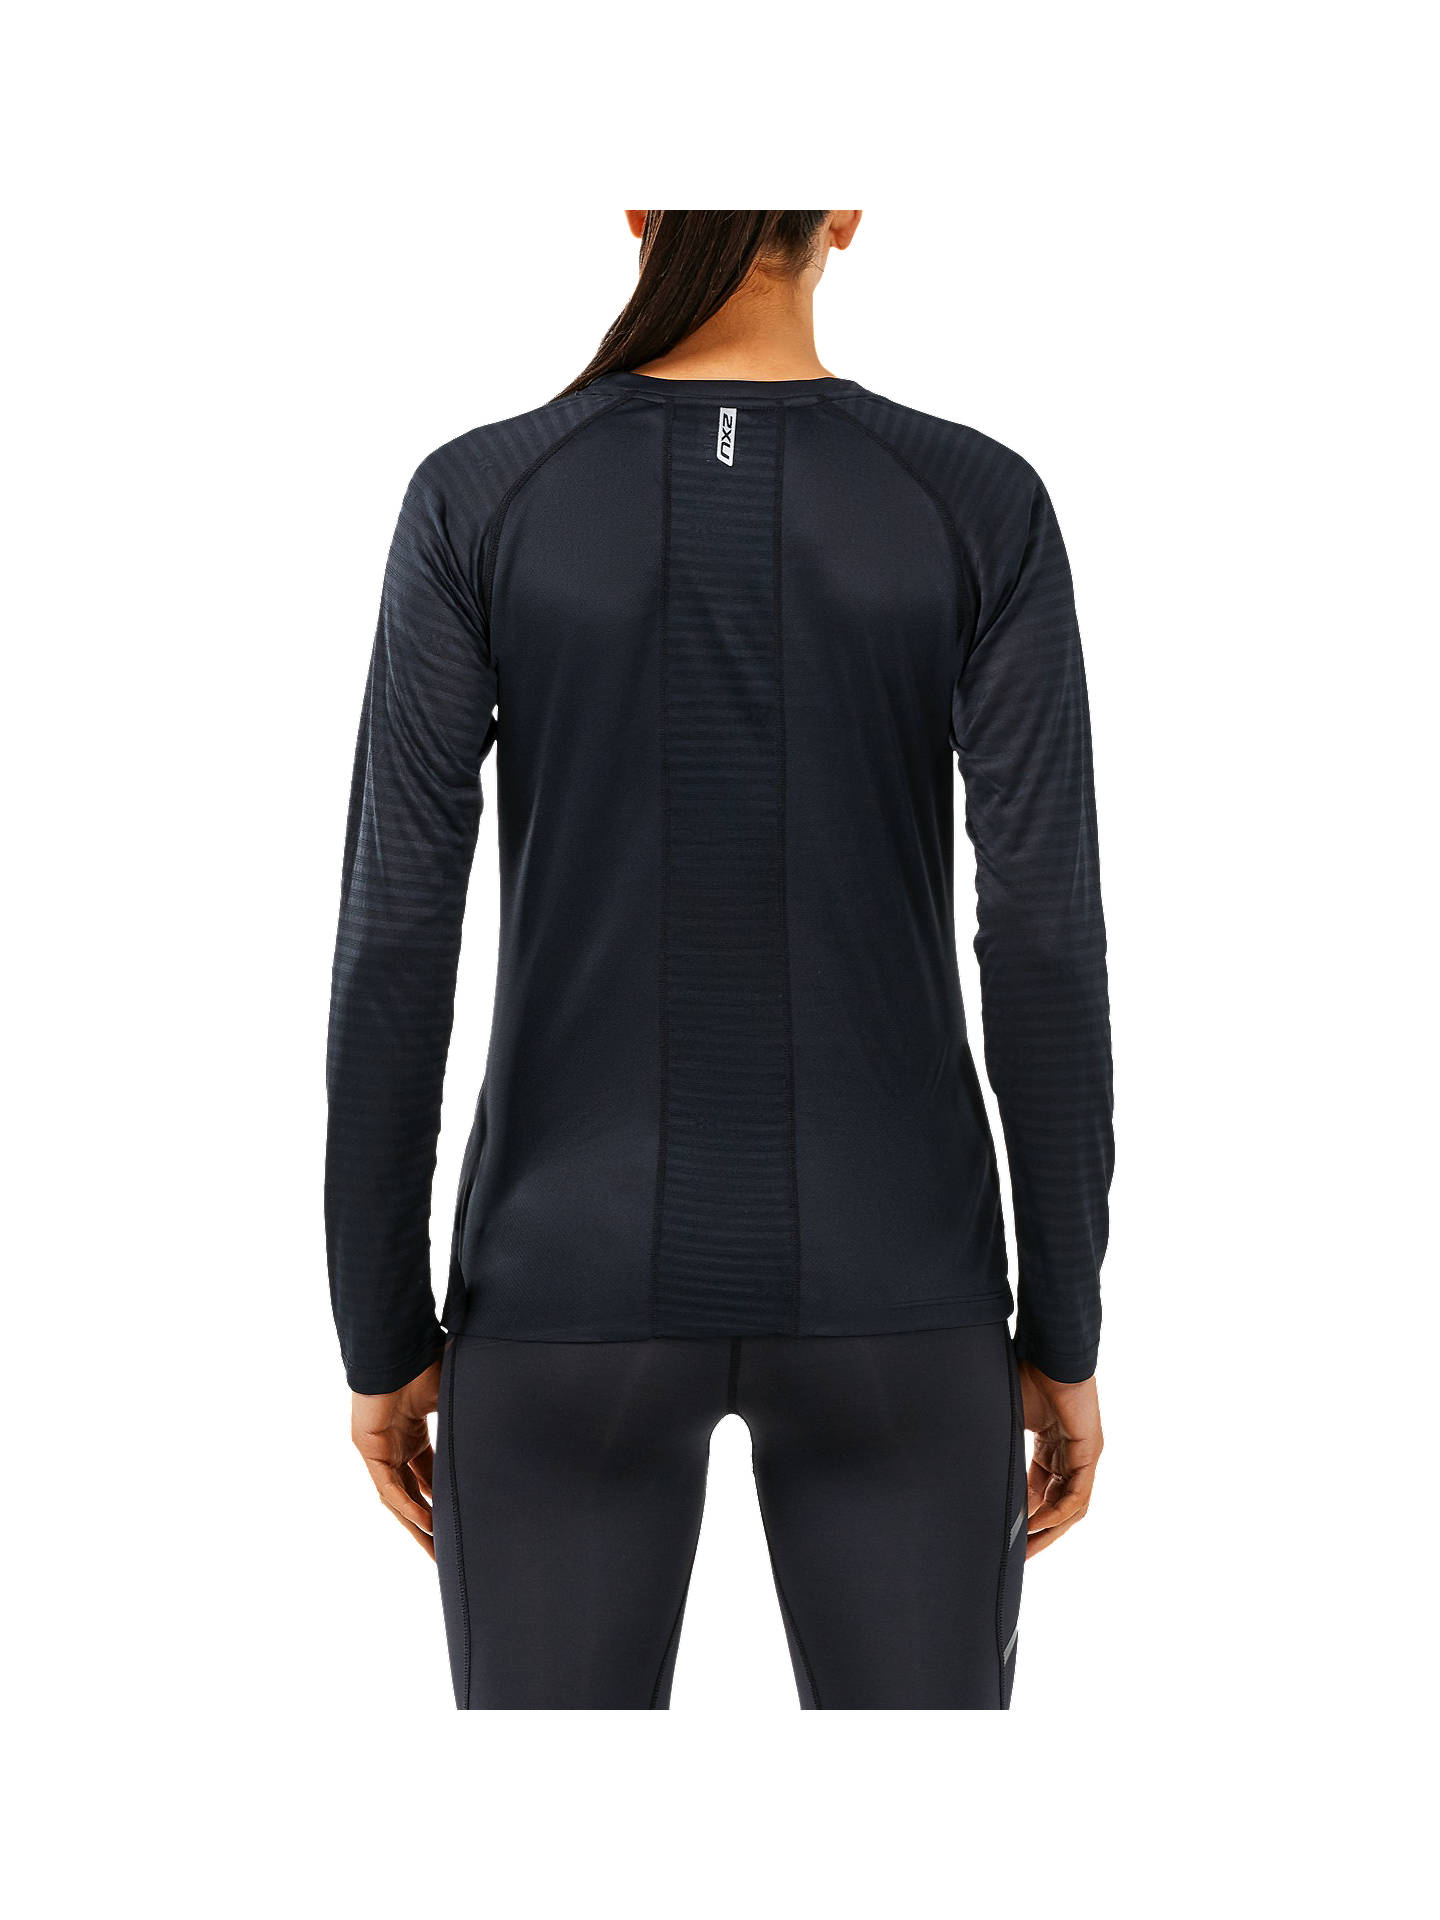 Buy 2XU Xvent Long Sleeve Top, Black, XS Online at johnlewis.com